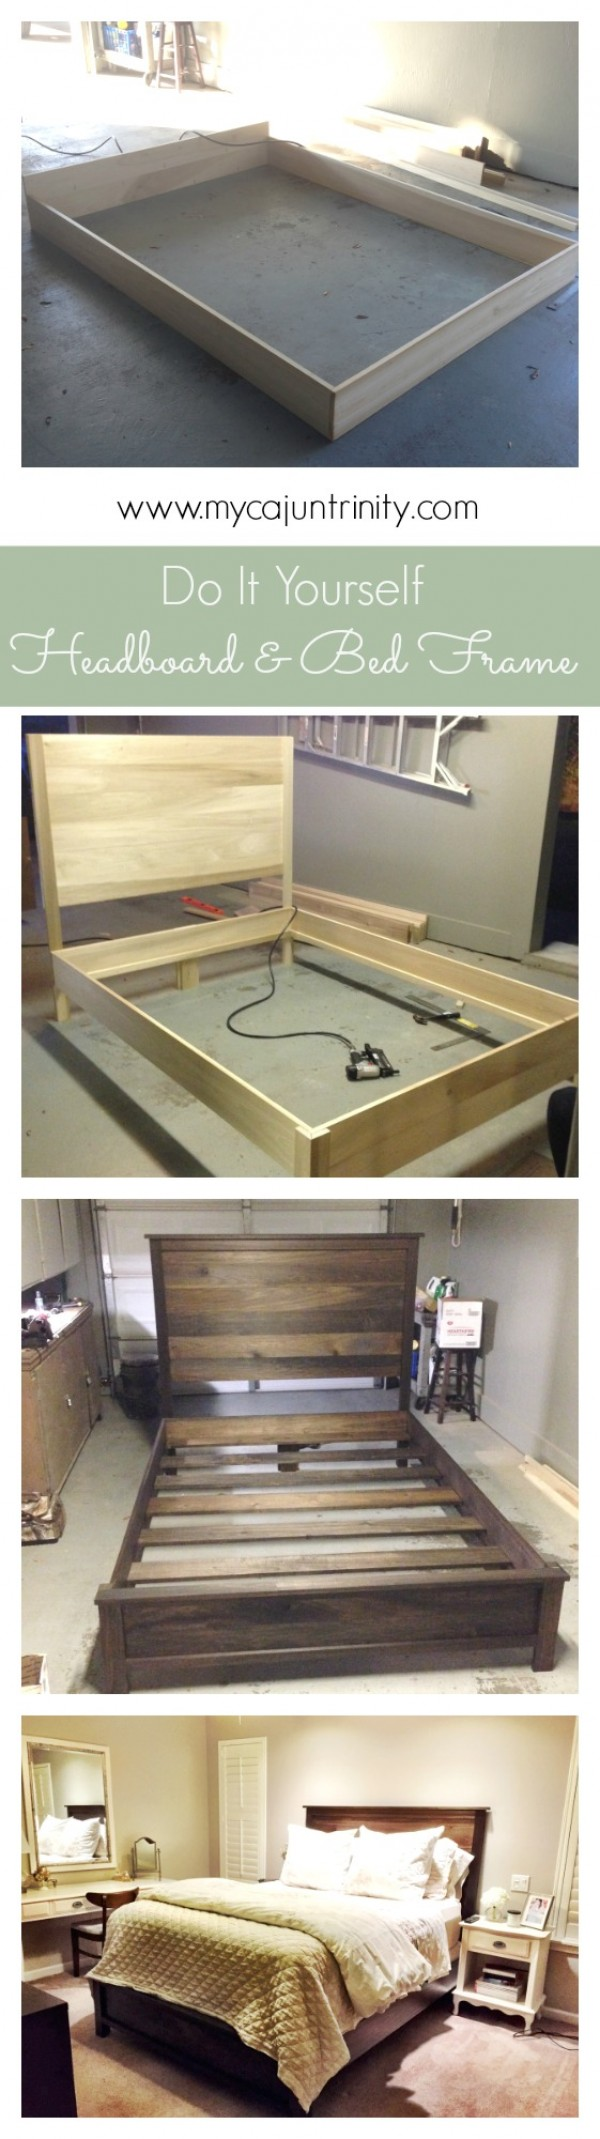 45 Easy DIY Bed Frame Projects You Can Build on a Budget - Check out the tutorial on how to build a headboard and bed frame